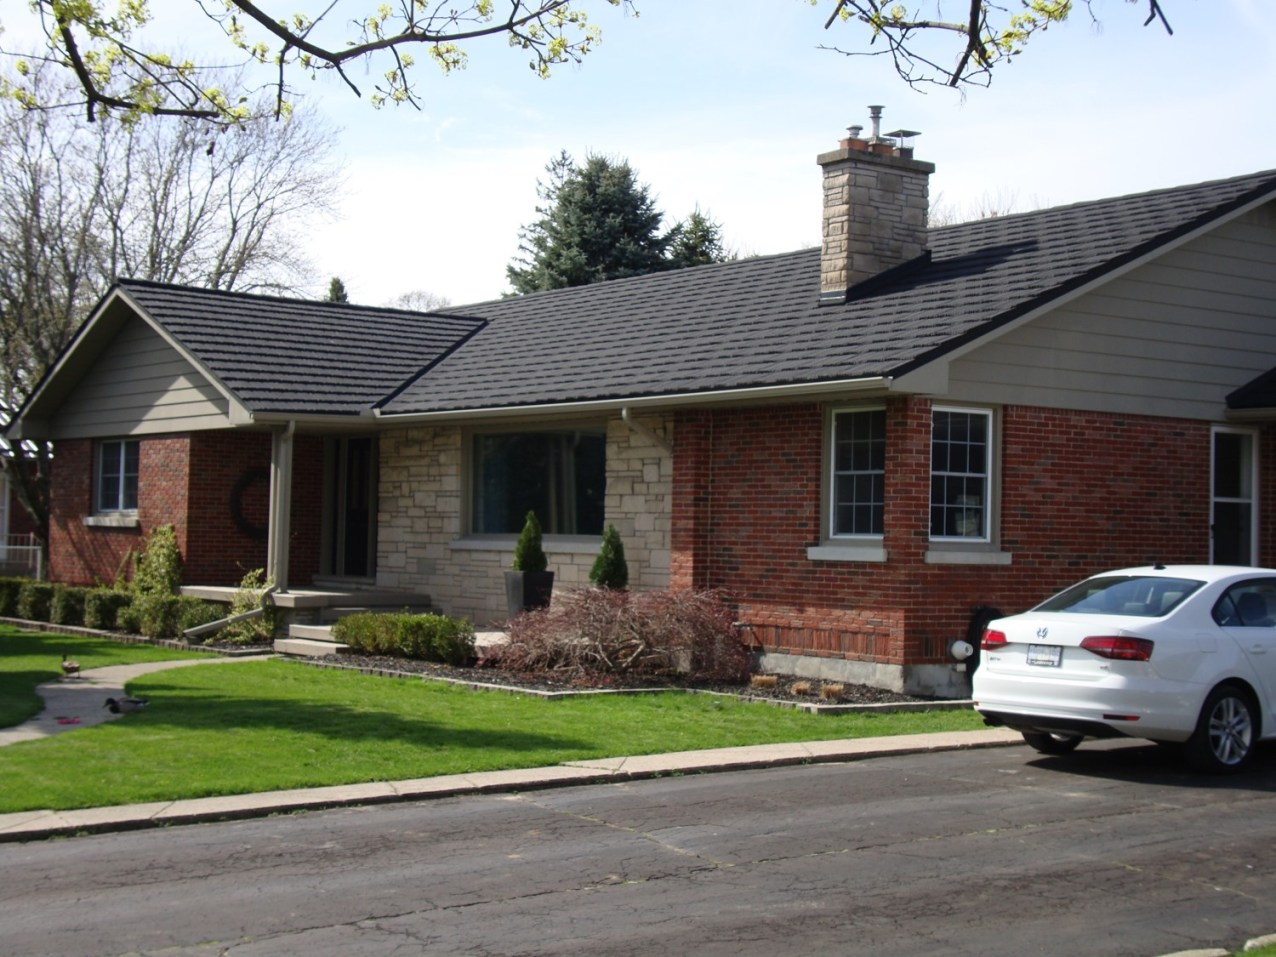 Aylmer Ontario home with installed metal roofing from Metal Roof Outlet